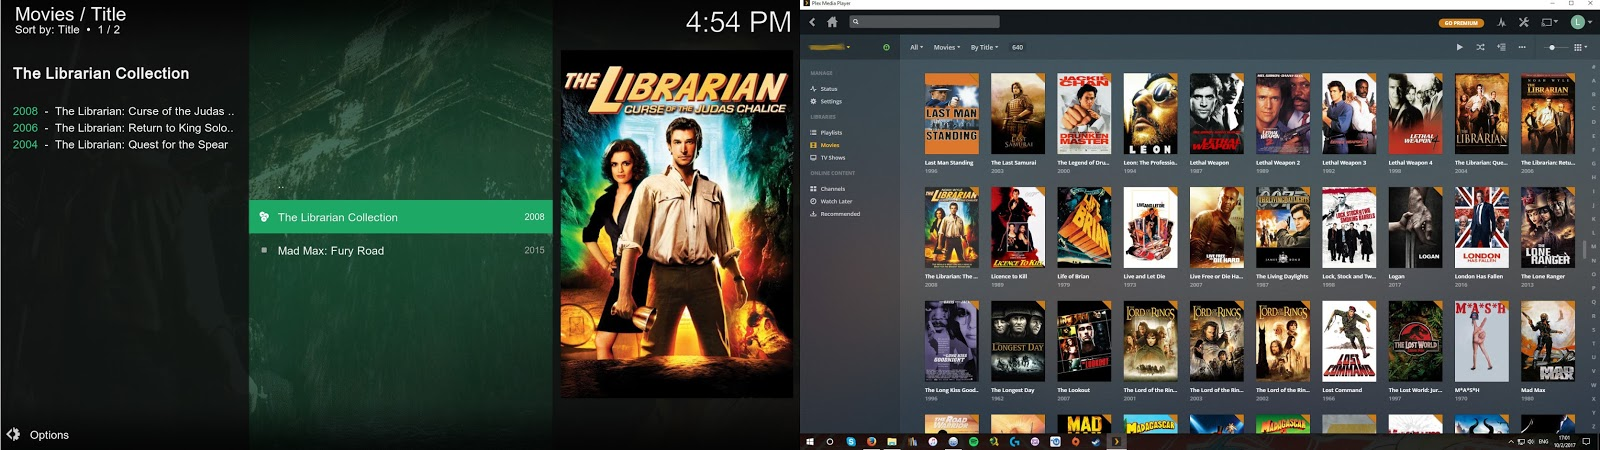 Setting up Plex to work with a Panasonic Viera HDTV and Kodi Comparisons